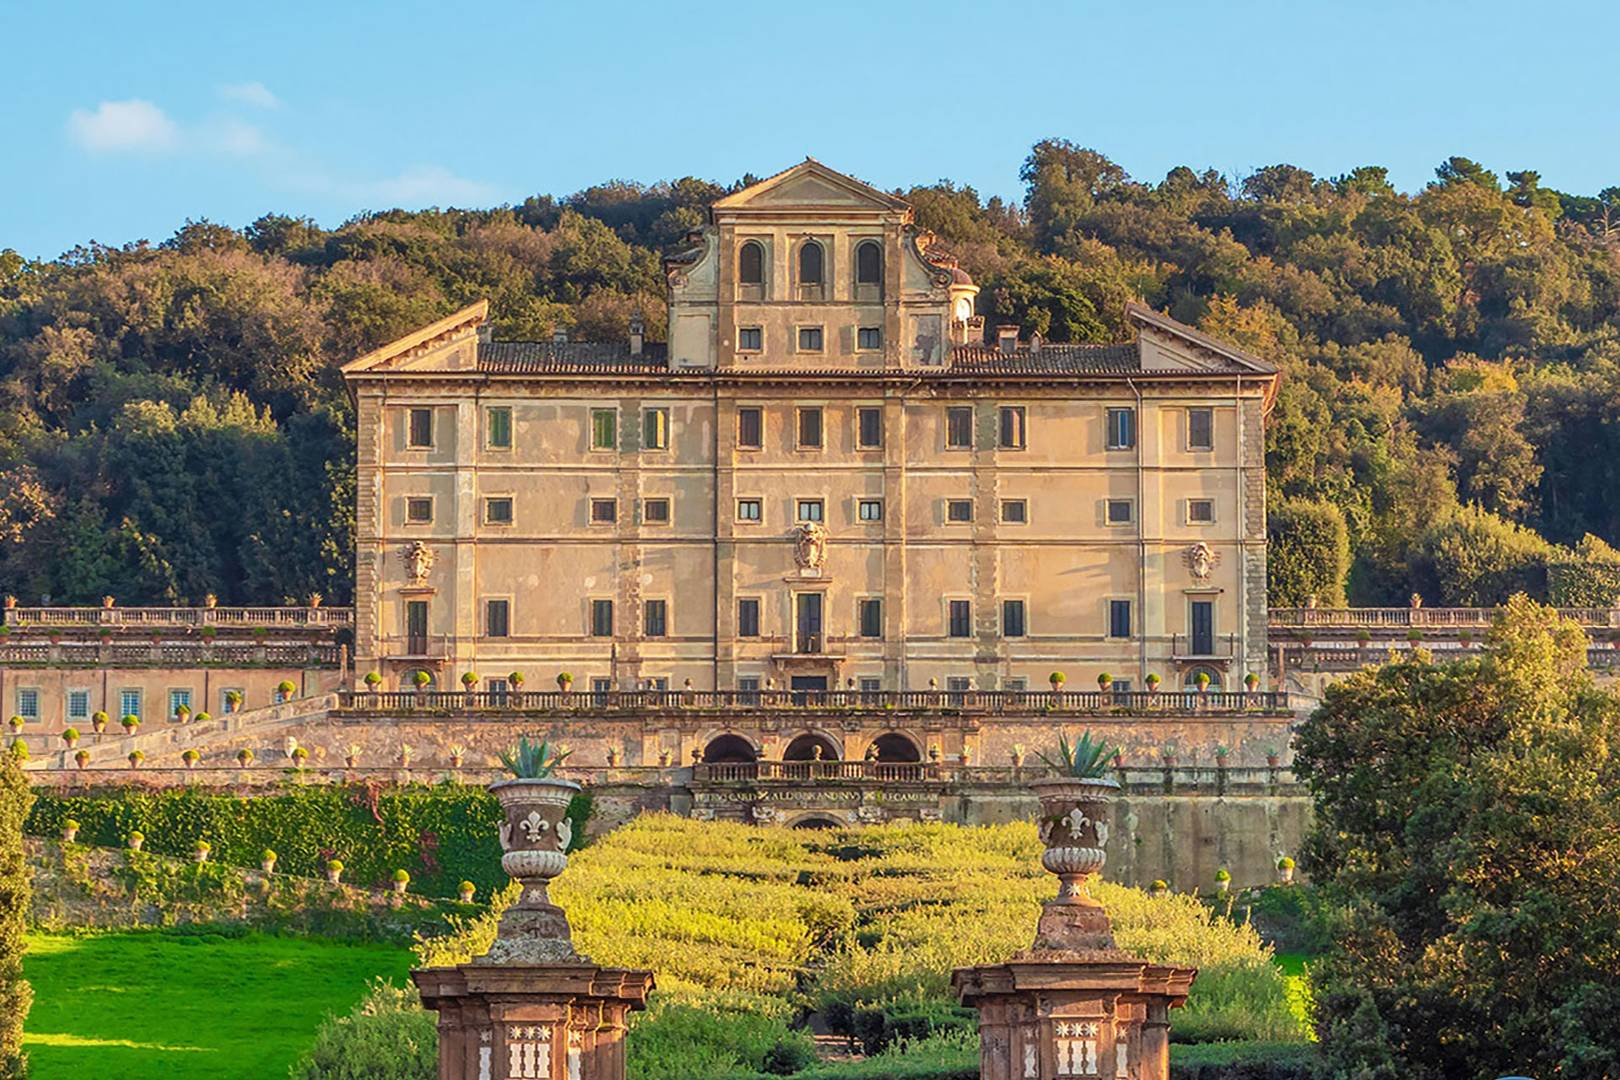 a-guide-to-the-historic-italian-town-where-lady-kitty-spencer-got-married